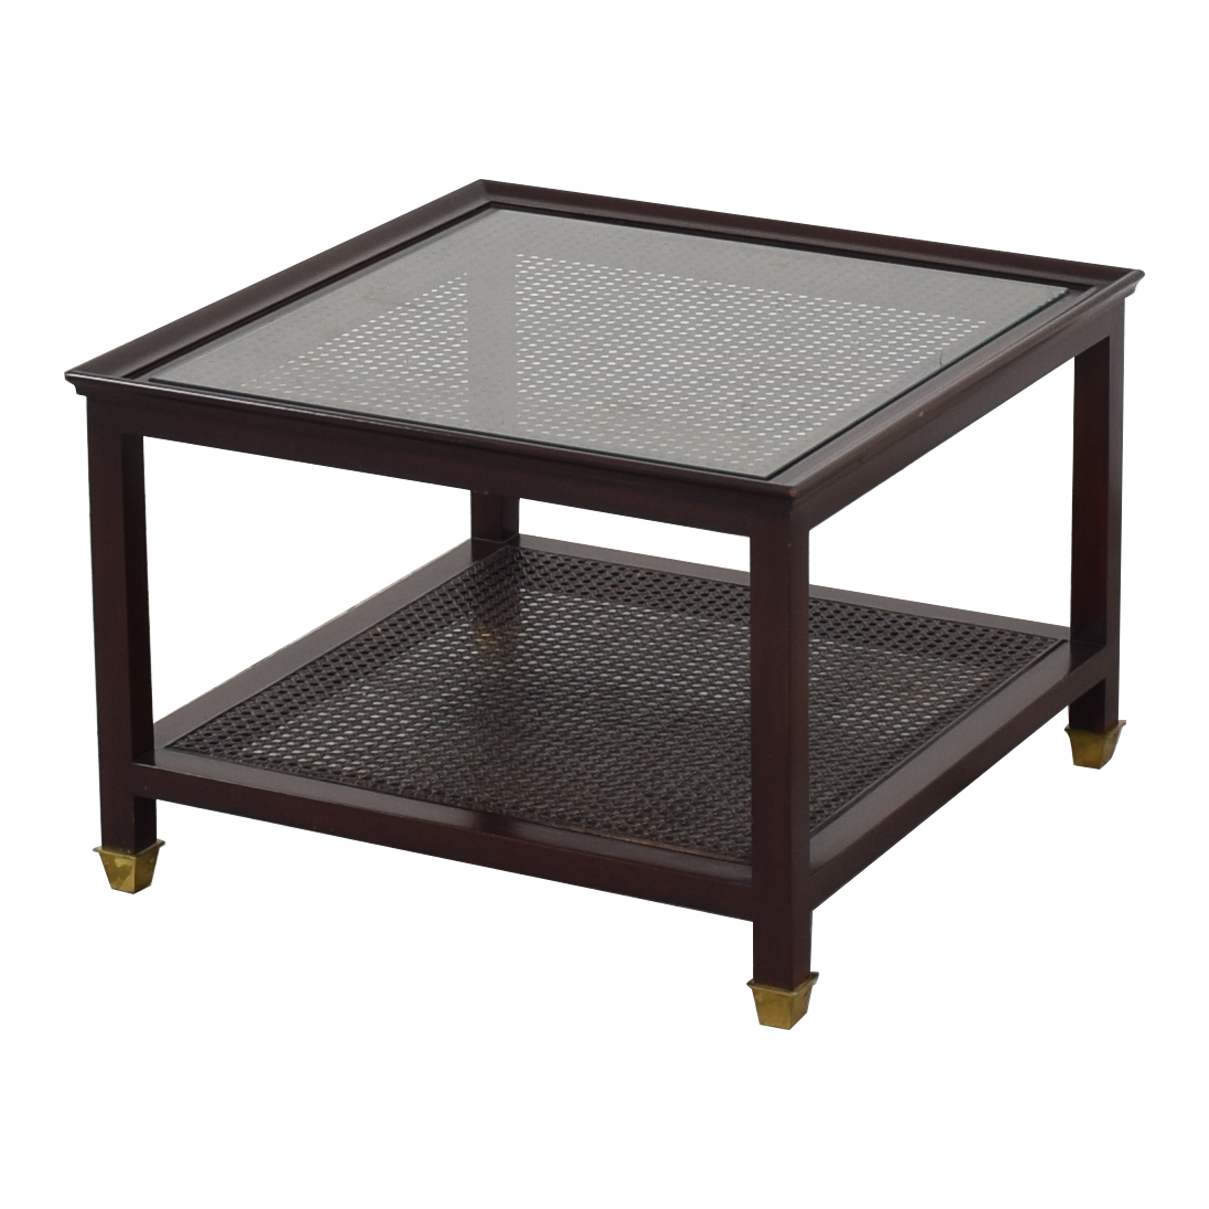 Donghia Side Table sale